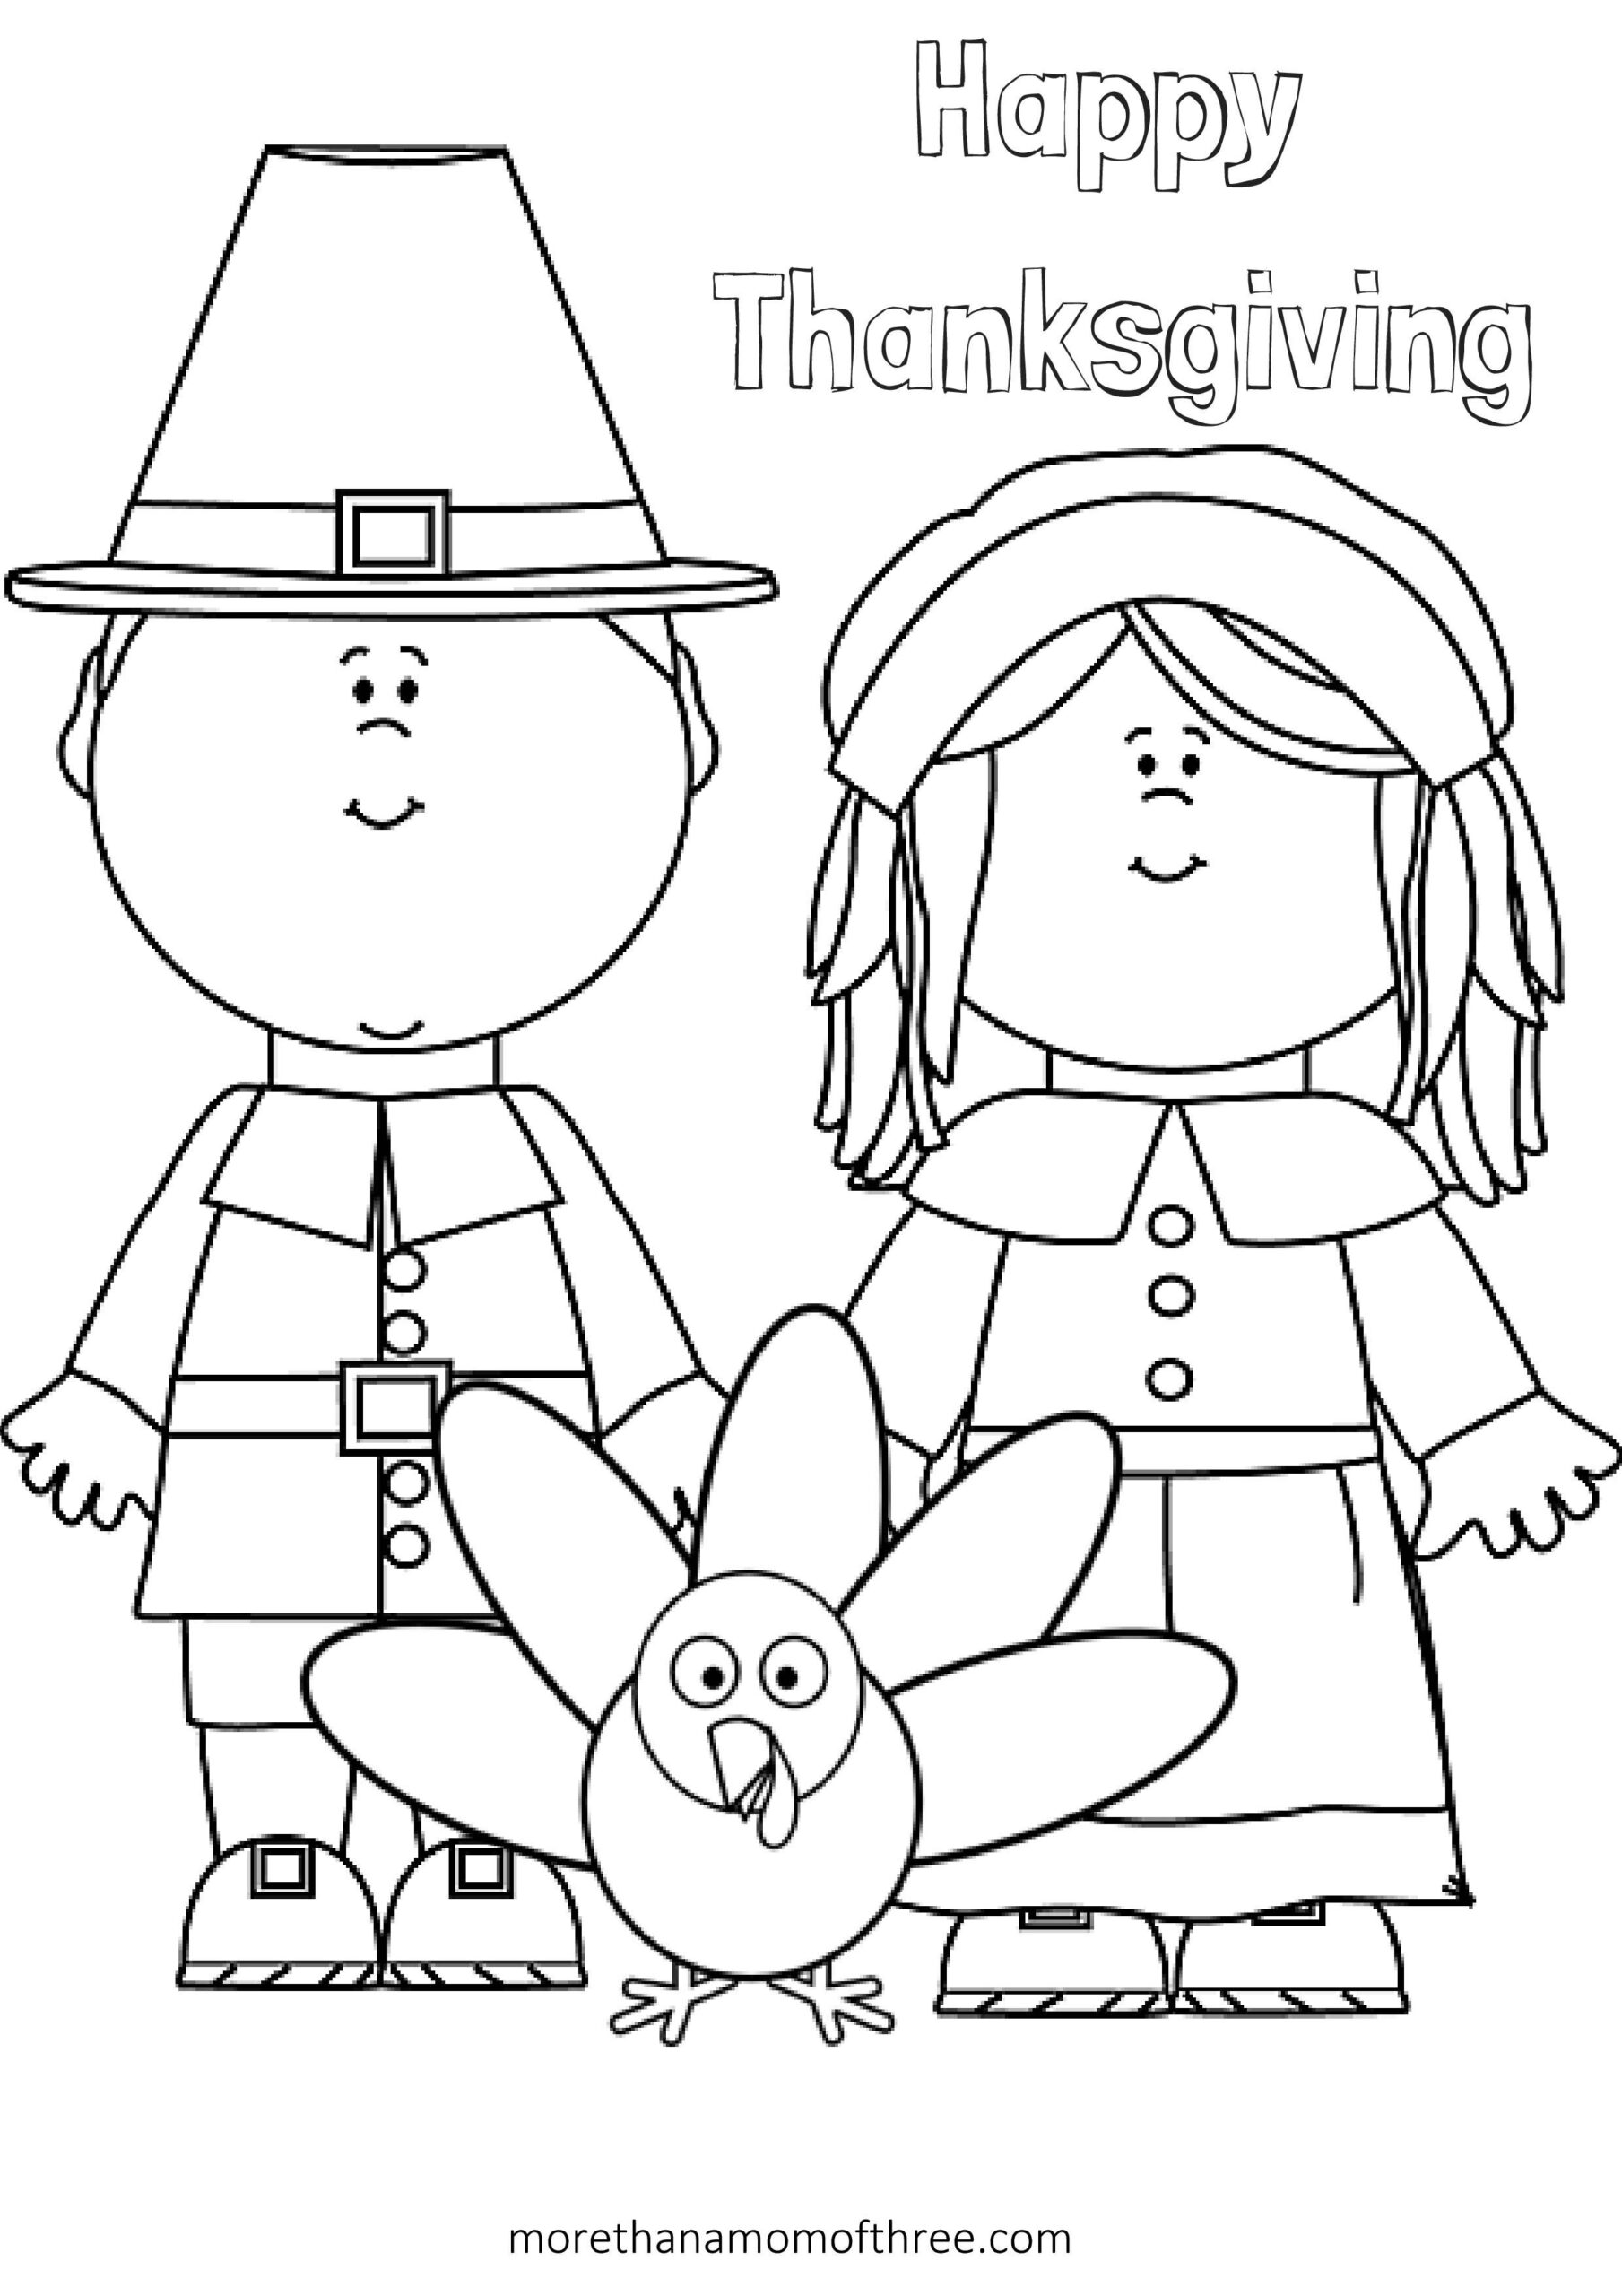 free thanksgiving coloring printable sheets happy watch pictures handprint ideas for coloring pages Happy Thanksgiving Coloring Page